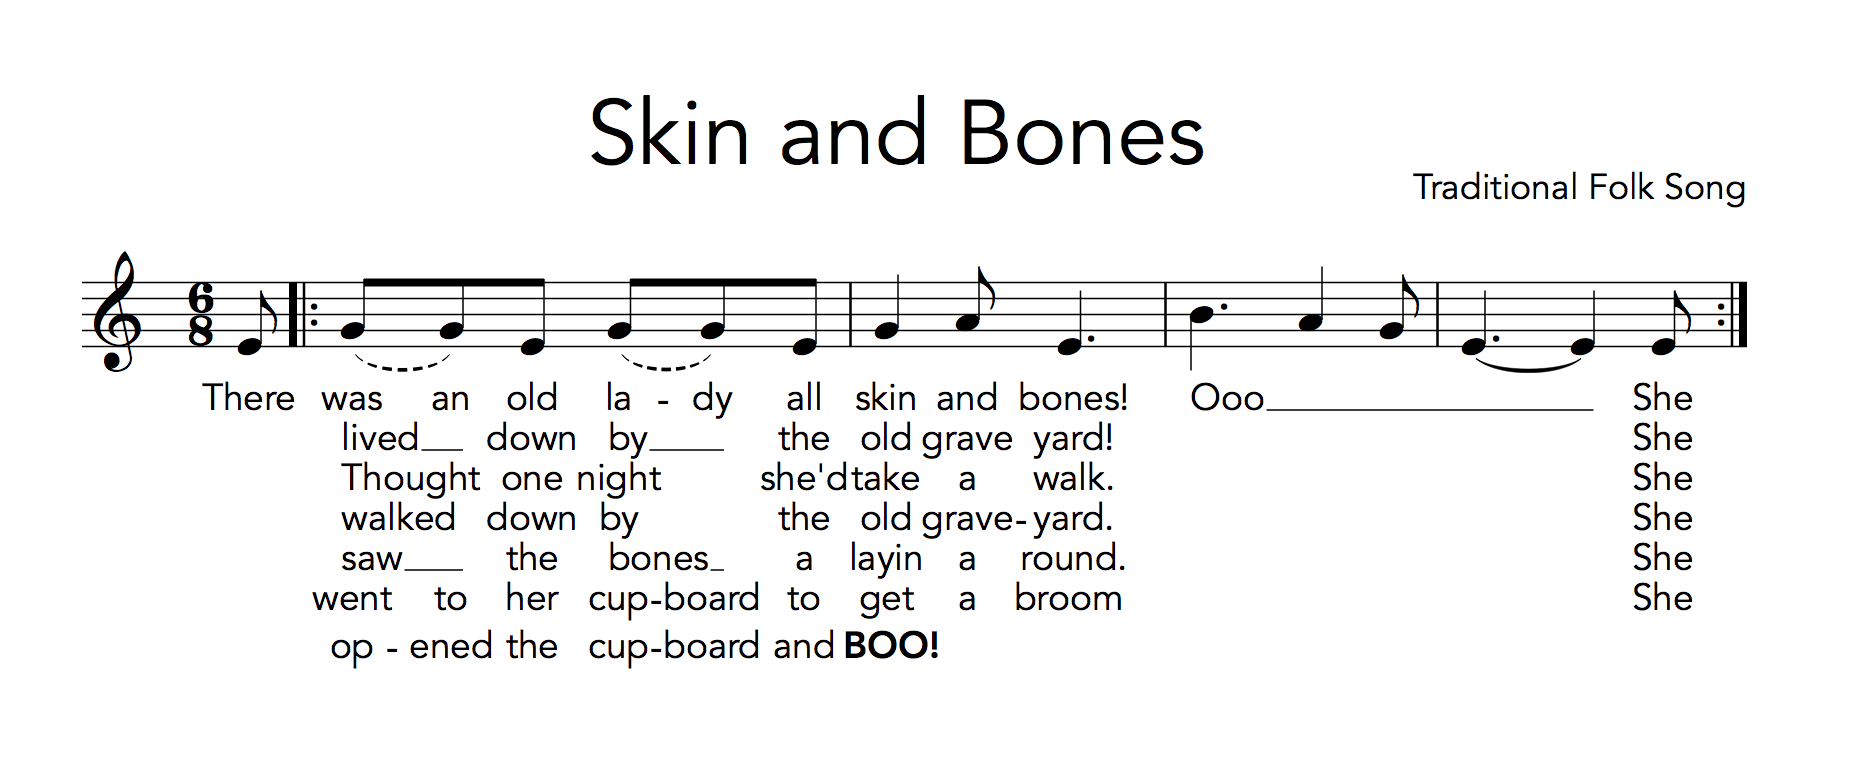 hight resolution of Skin and Bones Part 1 - Teaching With Orff